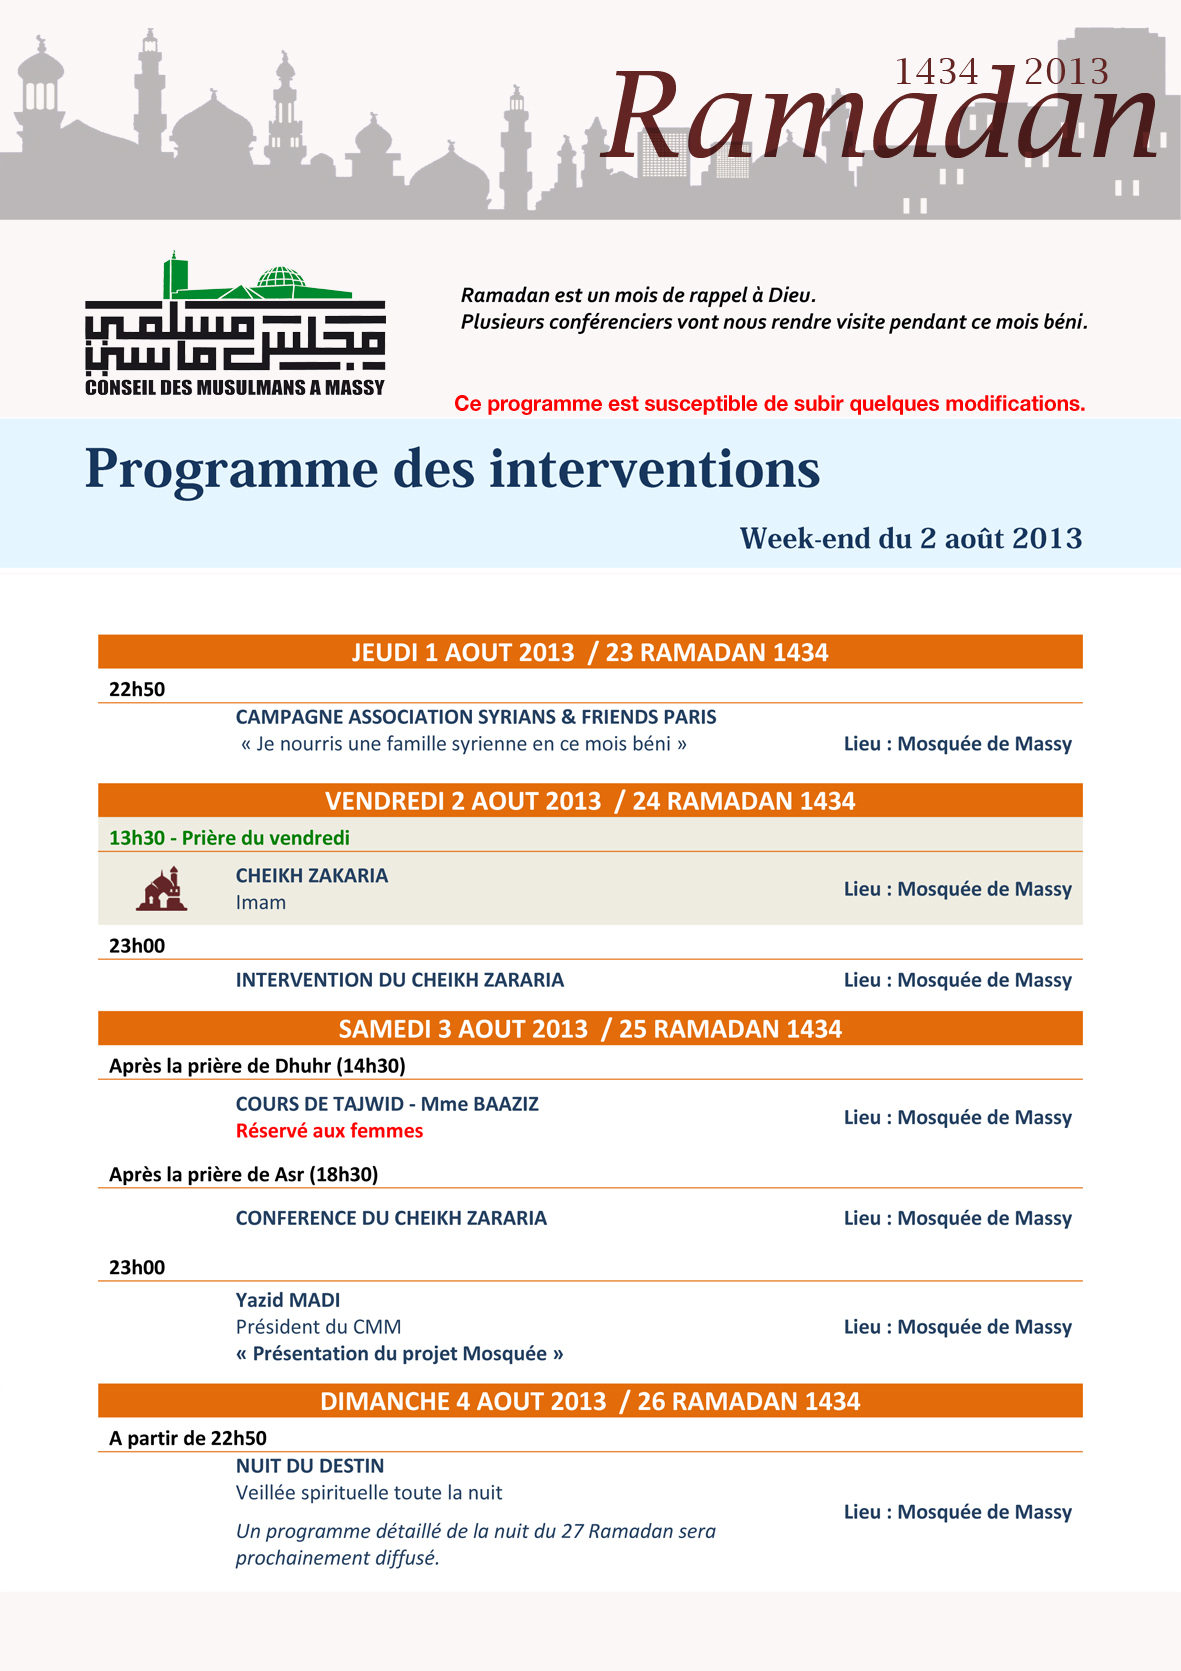 Programme des interventions - week-end du 2 août 2013